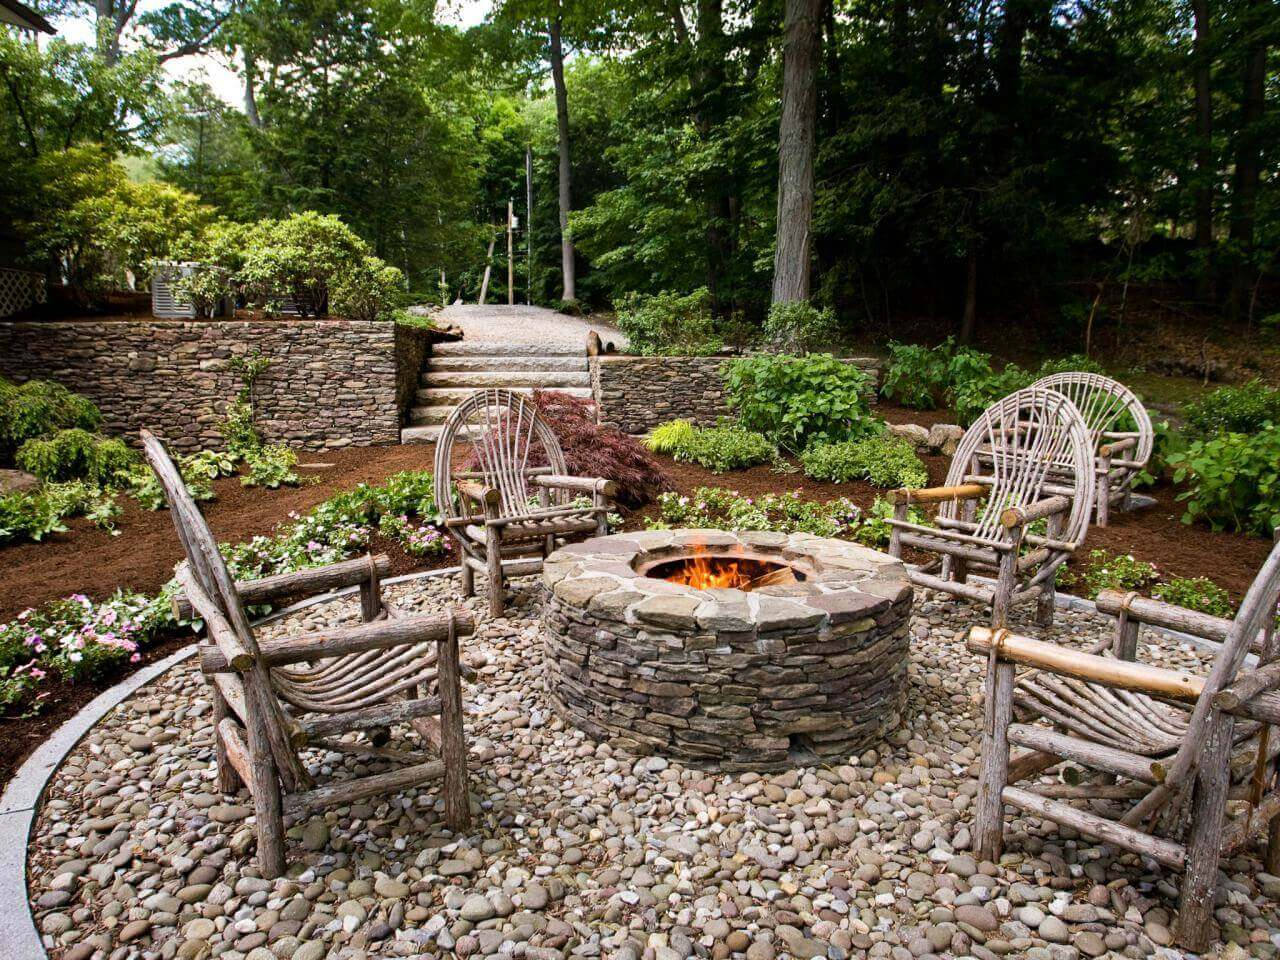 Wooden Seats Around a Stone Firepit   Awesome Firepit Area Ideas For Your Outdoor Activities